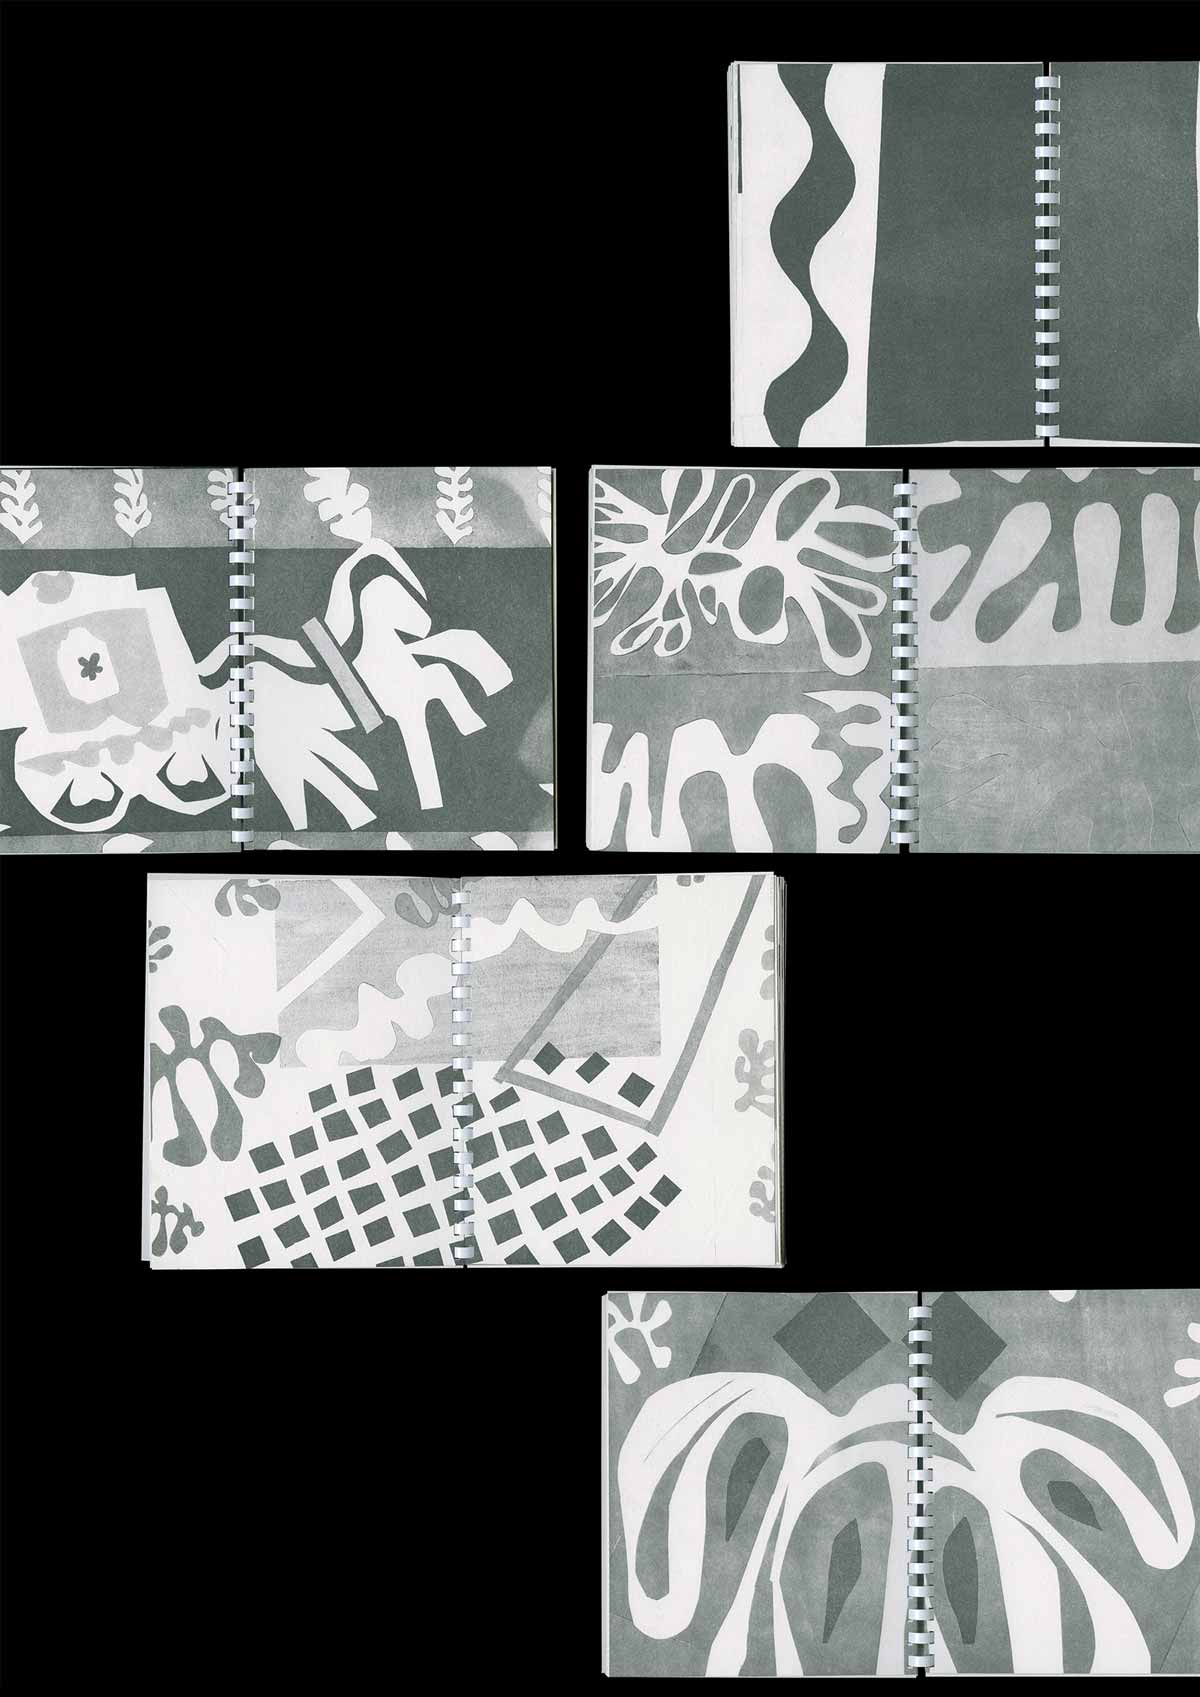 Hand pressed turps released pages, Henri Matisse: The Cut-Outs